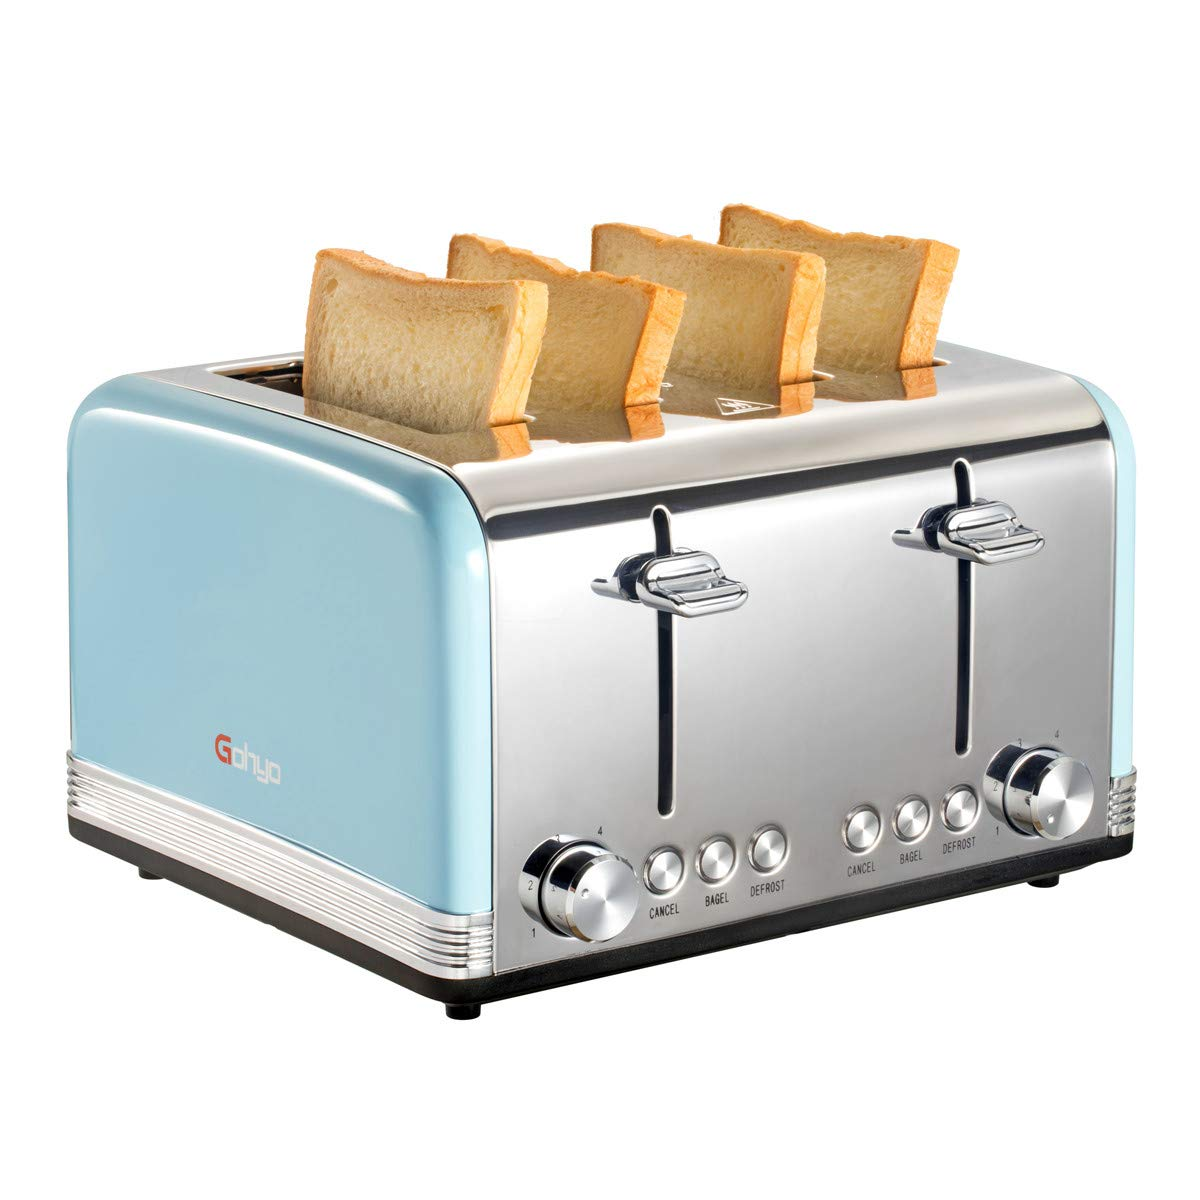 Gohyo 4 Slice Toaster | Stainless Steel with Wide Slots & Removable Crumb Tray for Bread & Bagels (Blue)